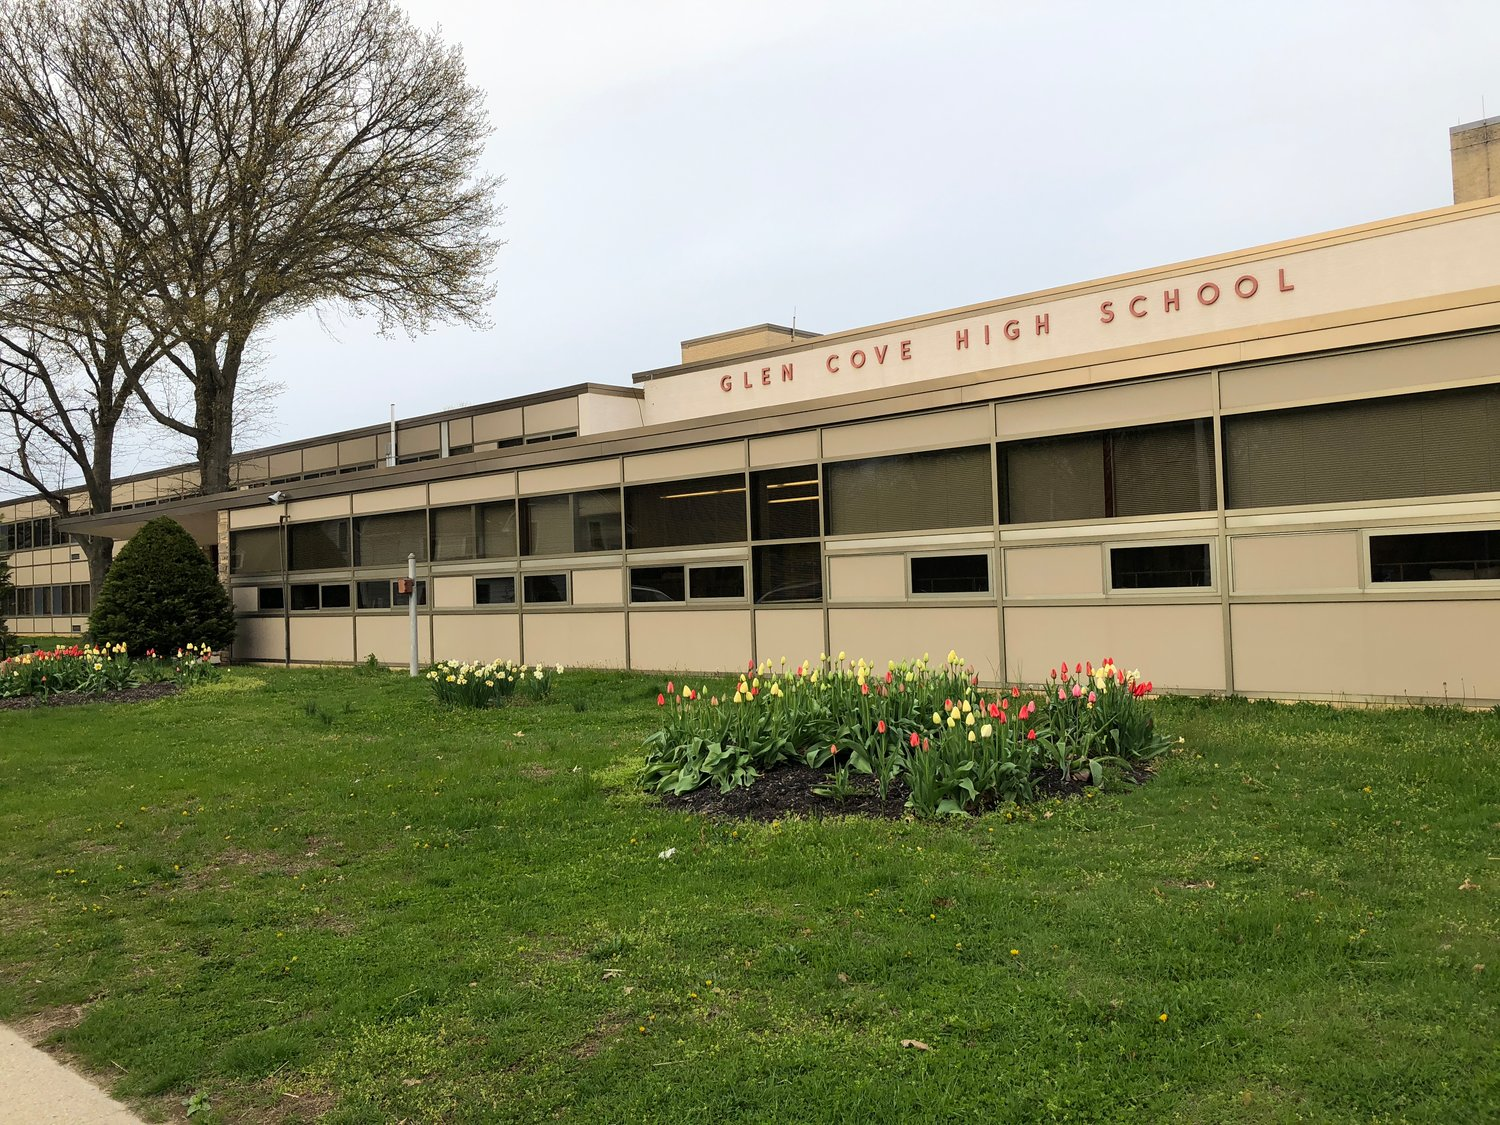 Each building in the Glen Cove School District will have a new security vestibule constructed by the end of the February break.